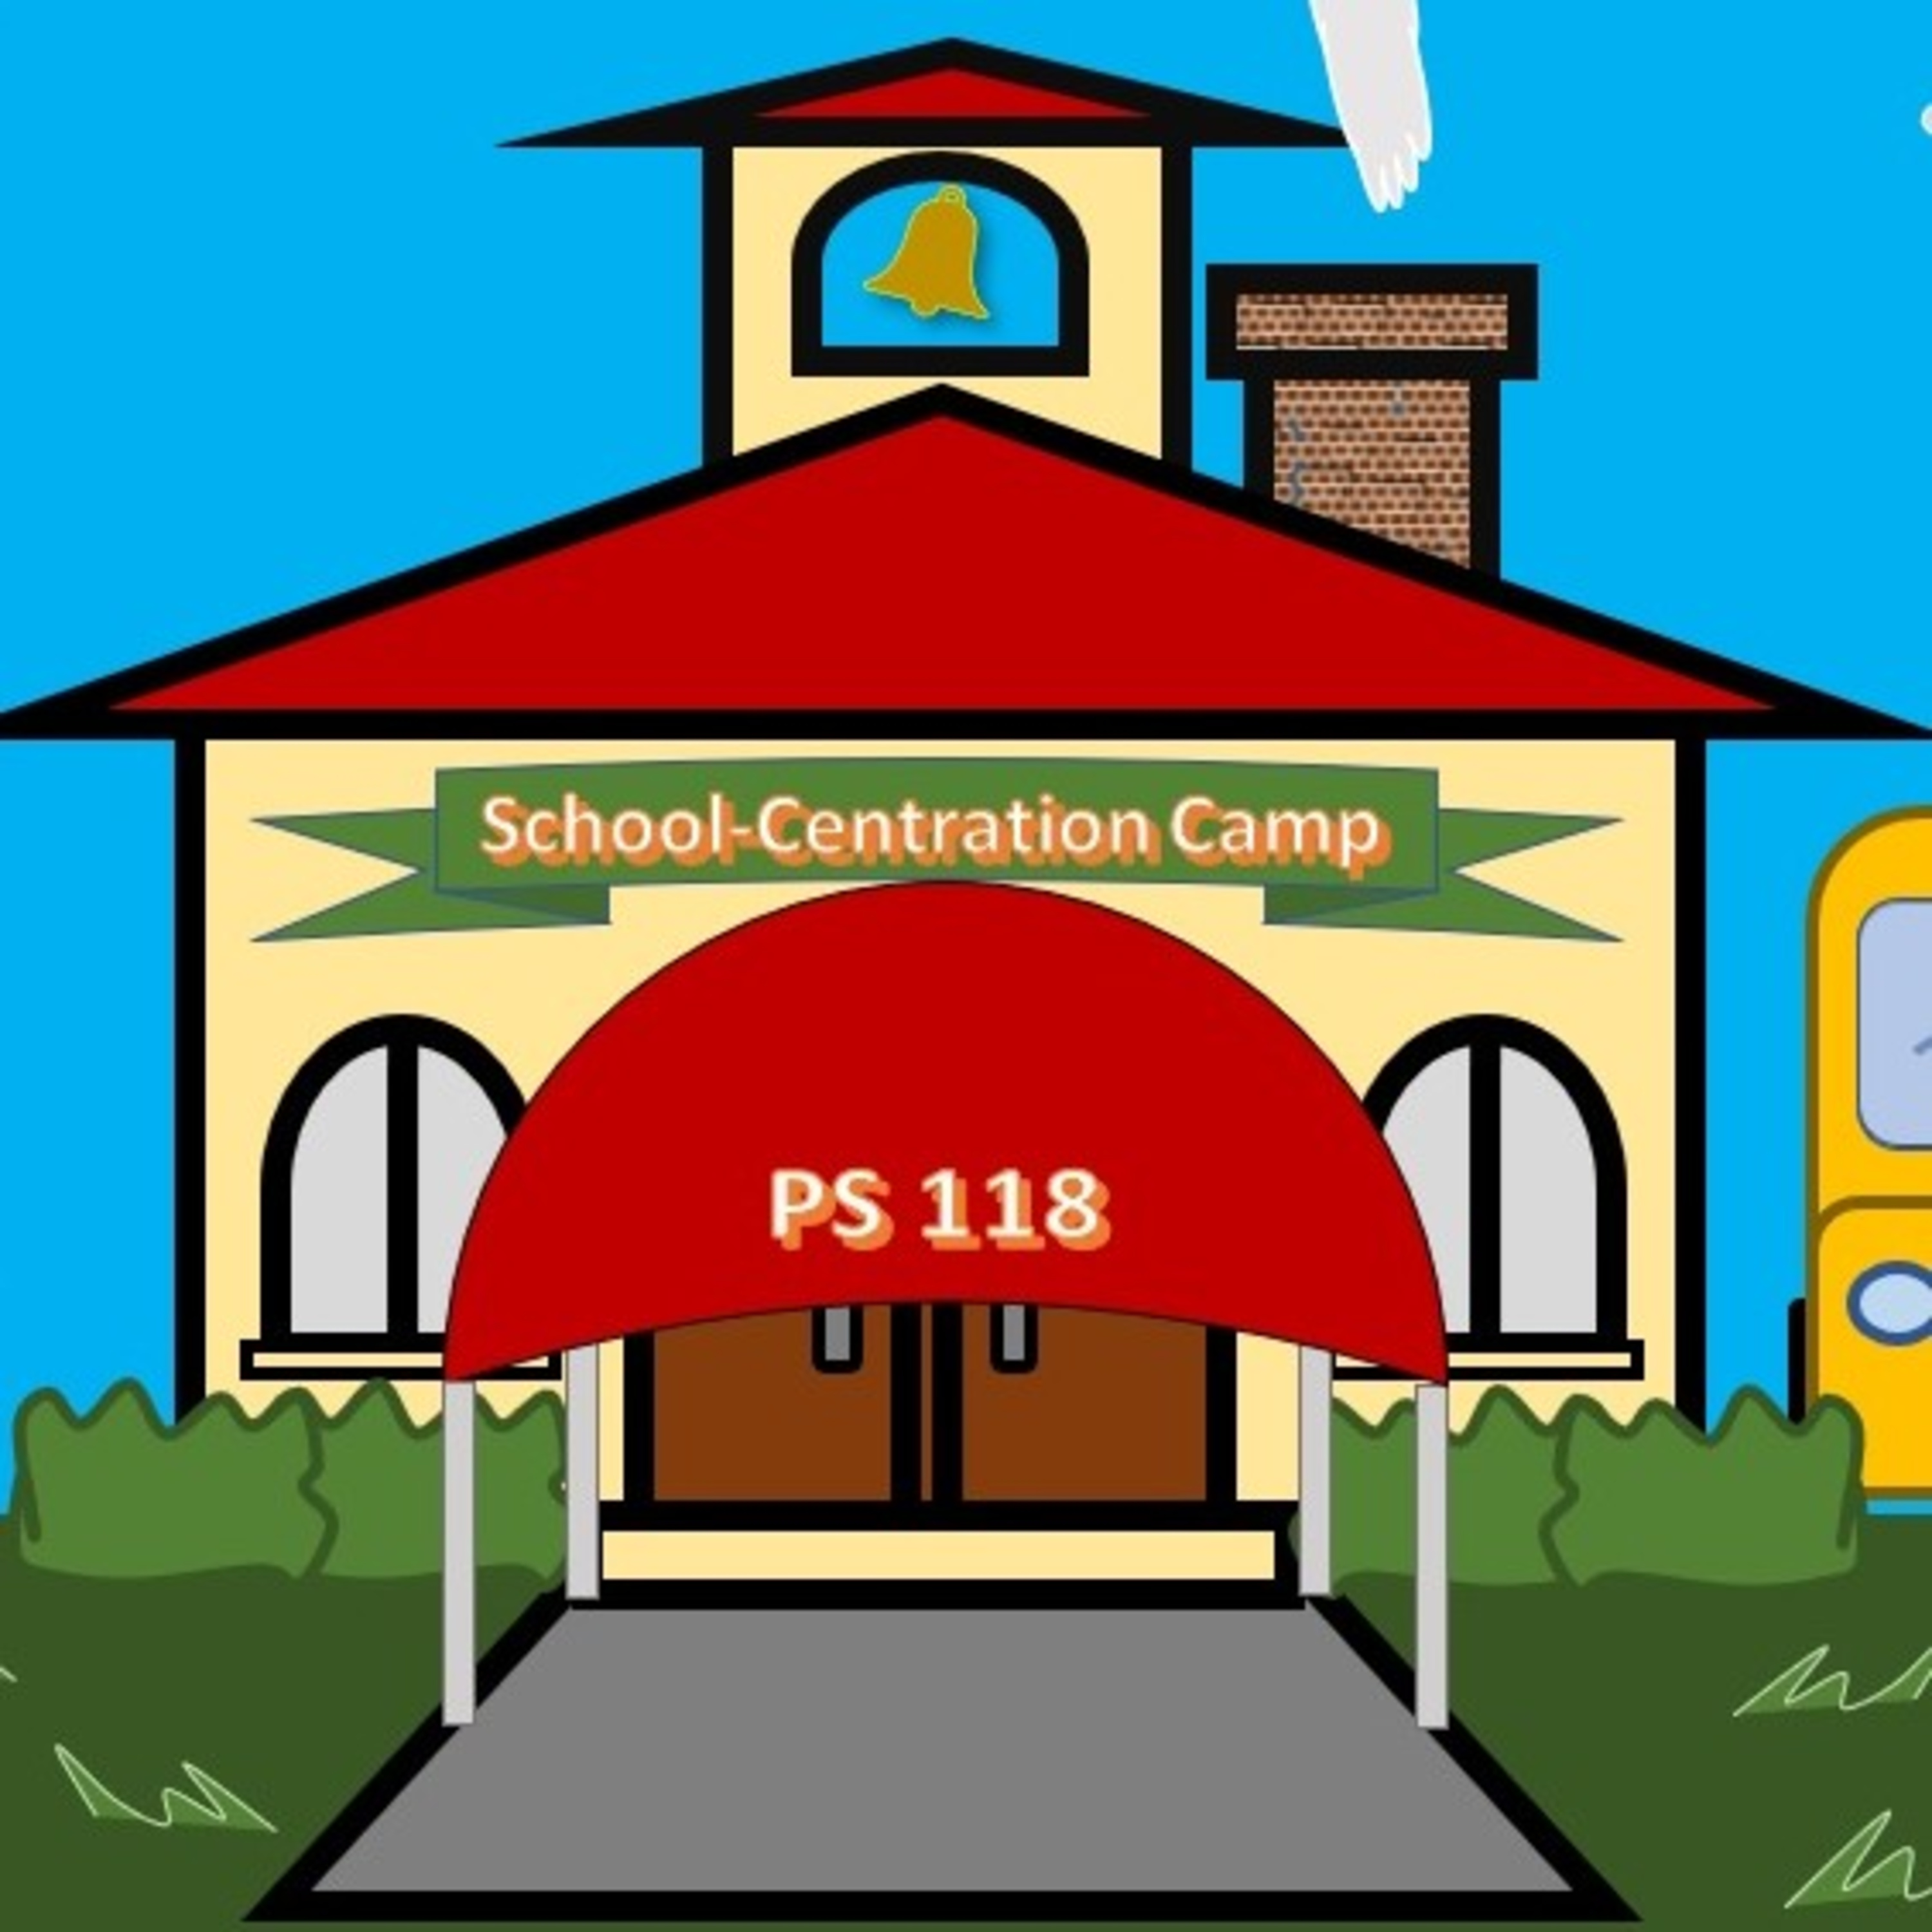 School-centration Camp